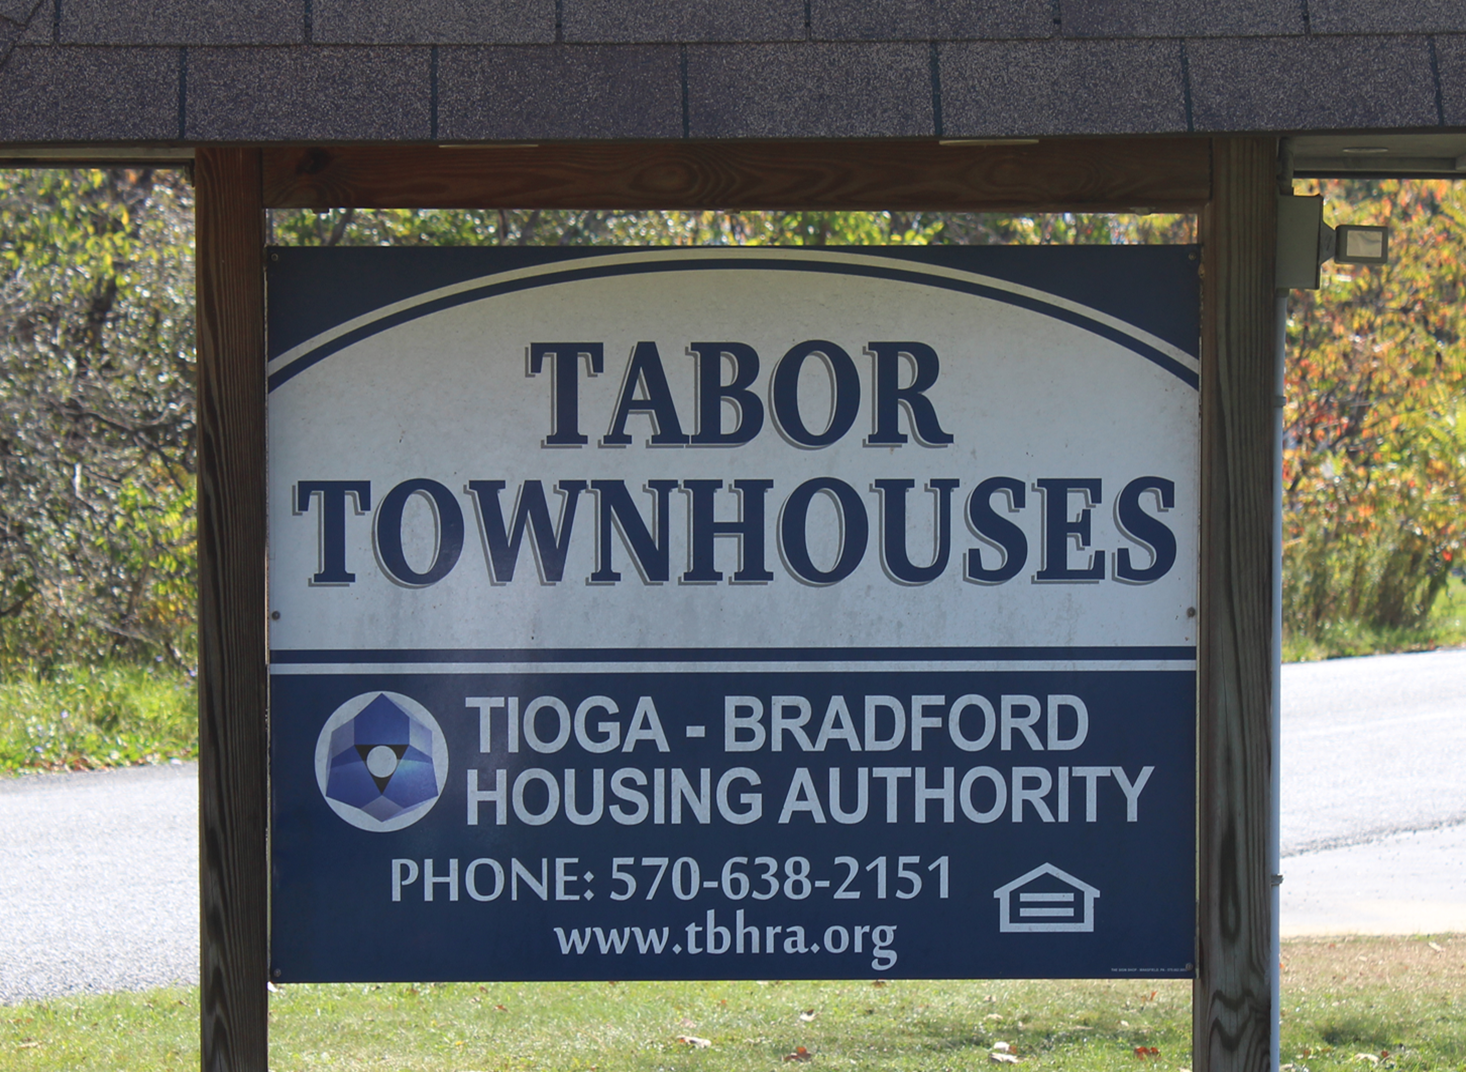 Tabor Townhouses